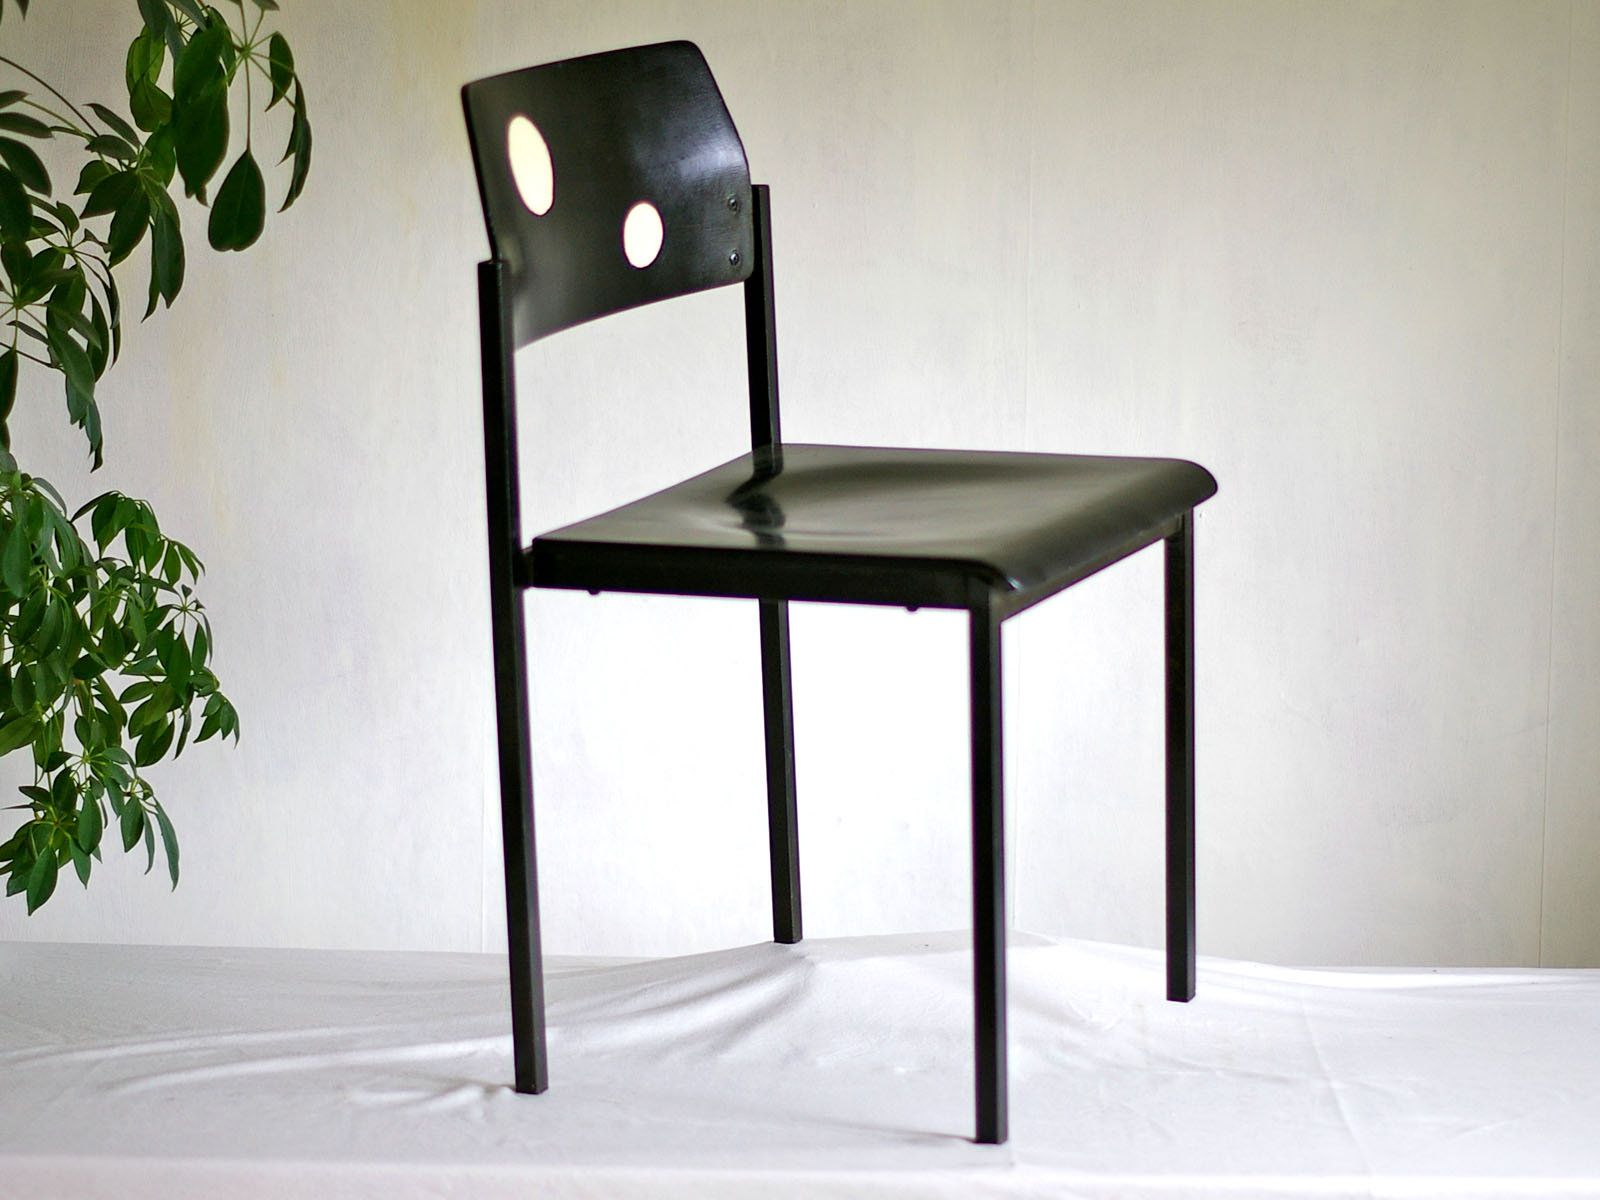 Chair Wooden Chair With Metal Frame Black White Dots Metal Legs